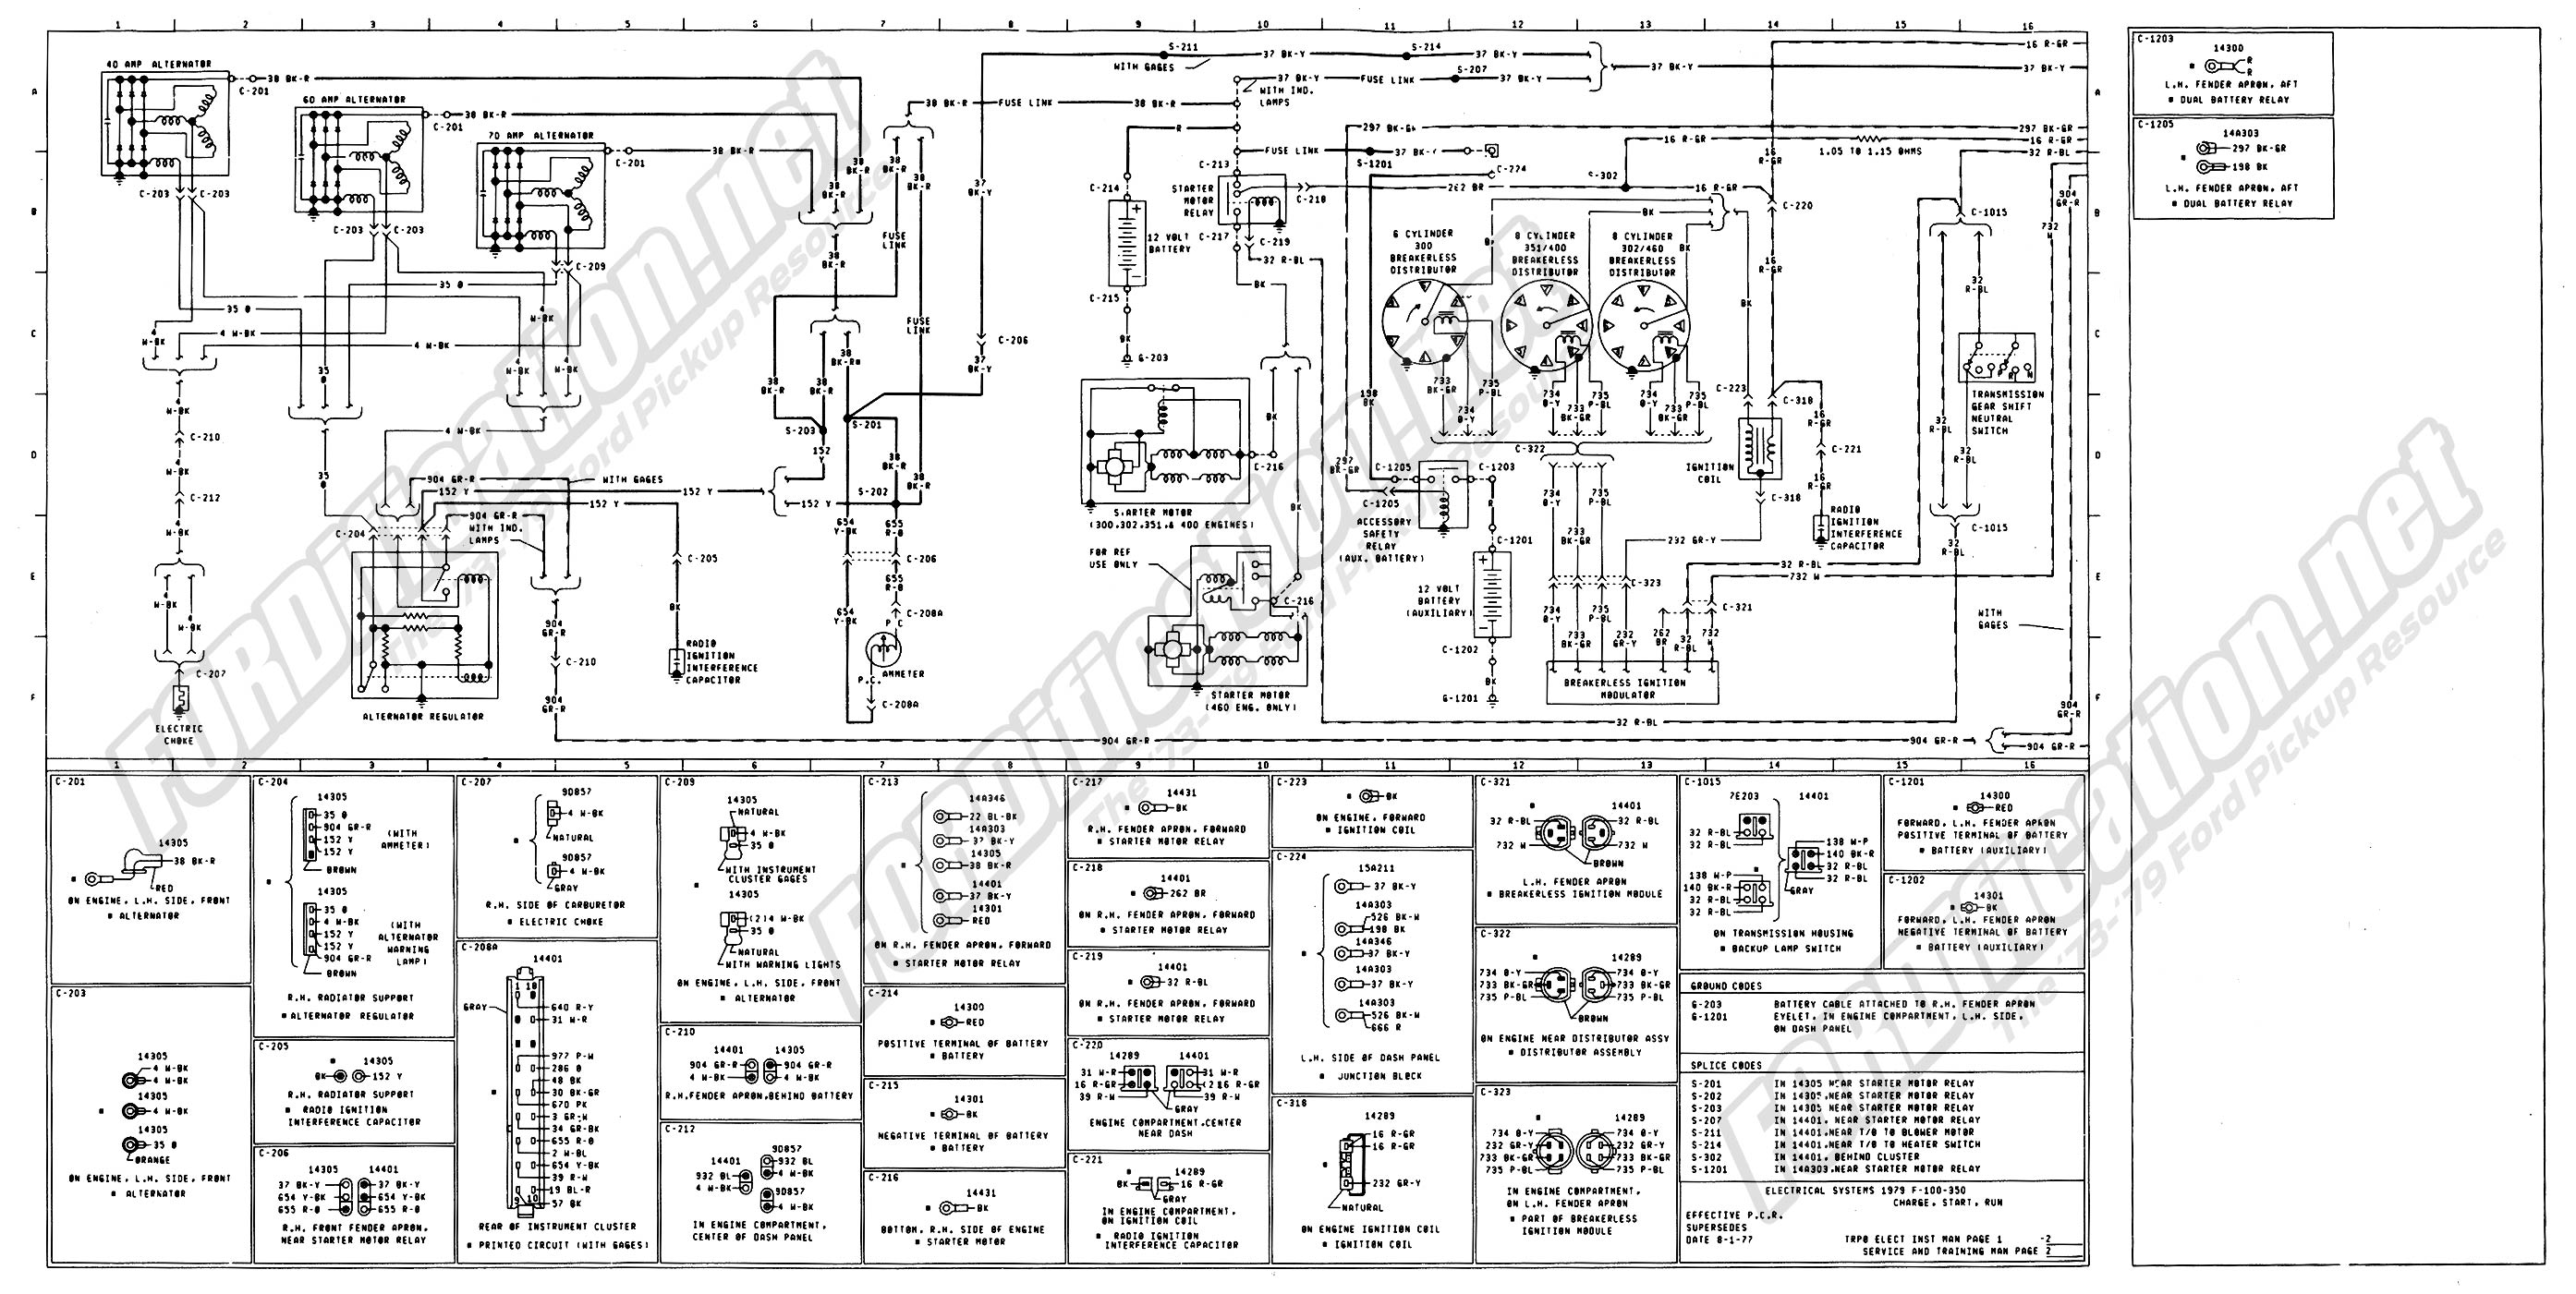 wiring_79master_2of9 1973 1979 ford truck wiring diagrams & schematics fordification net Ford Tempo Alternator Wiring Diagram at edmiracle.co